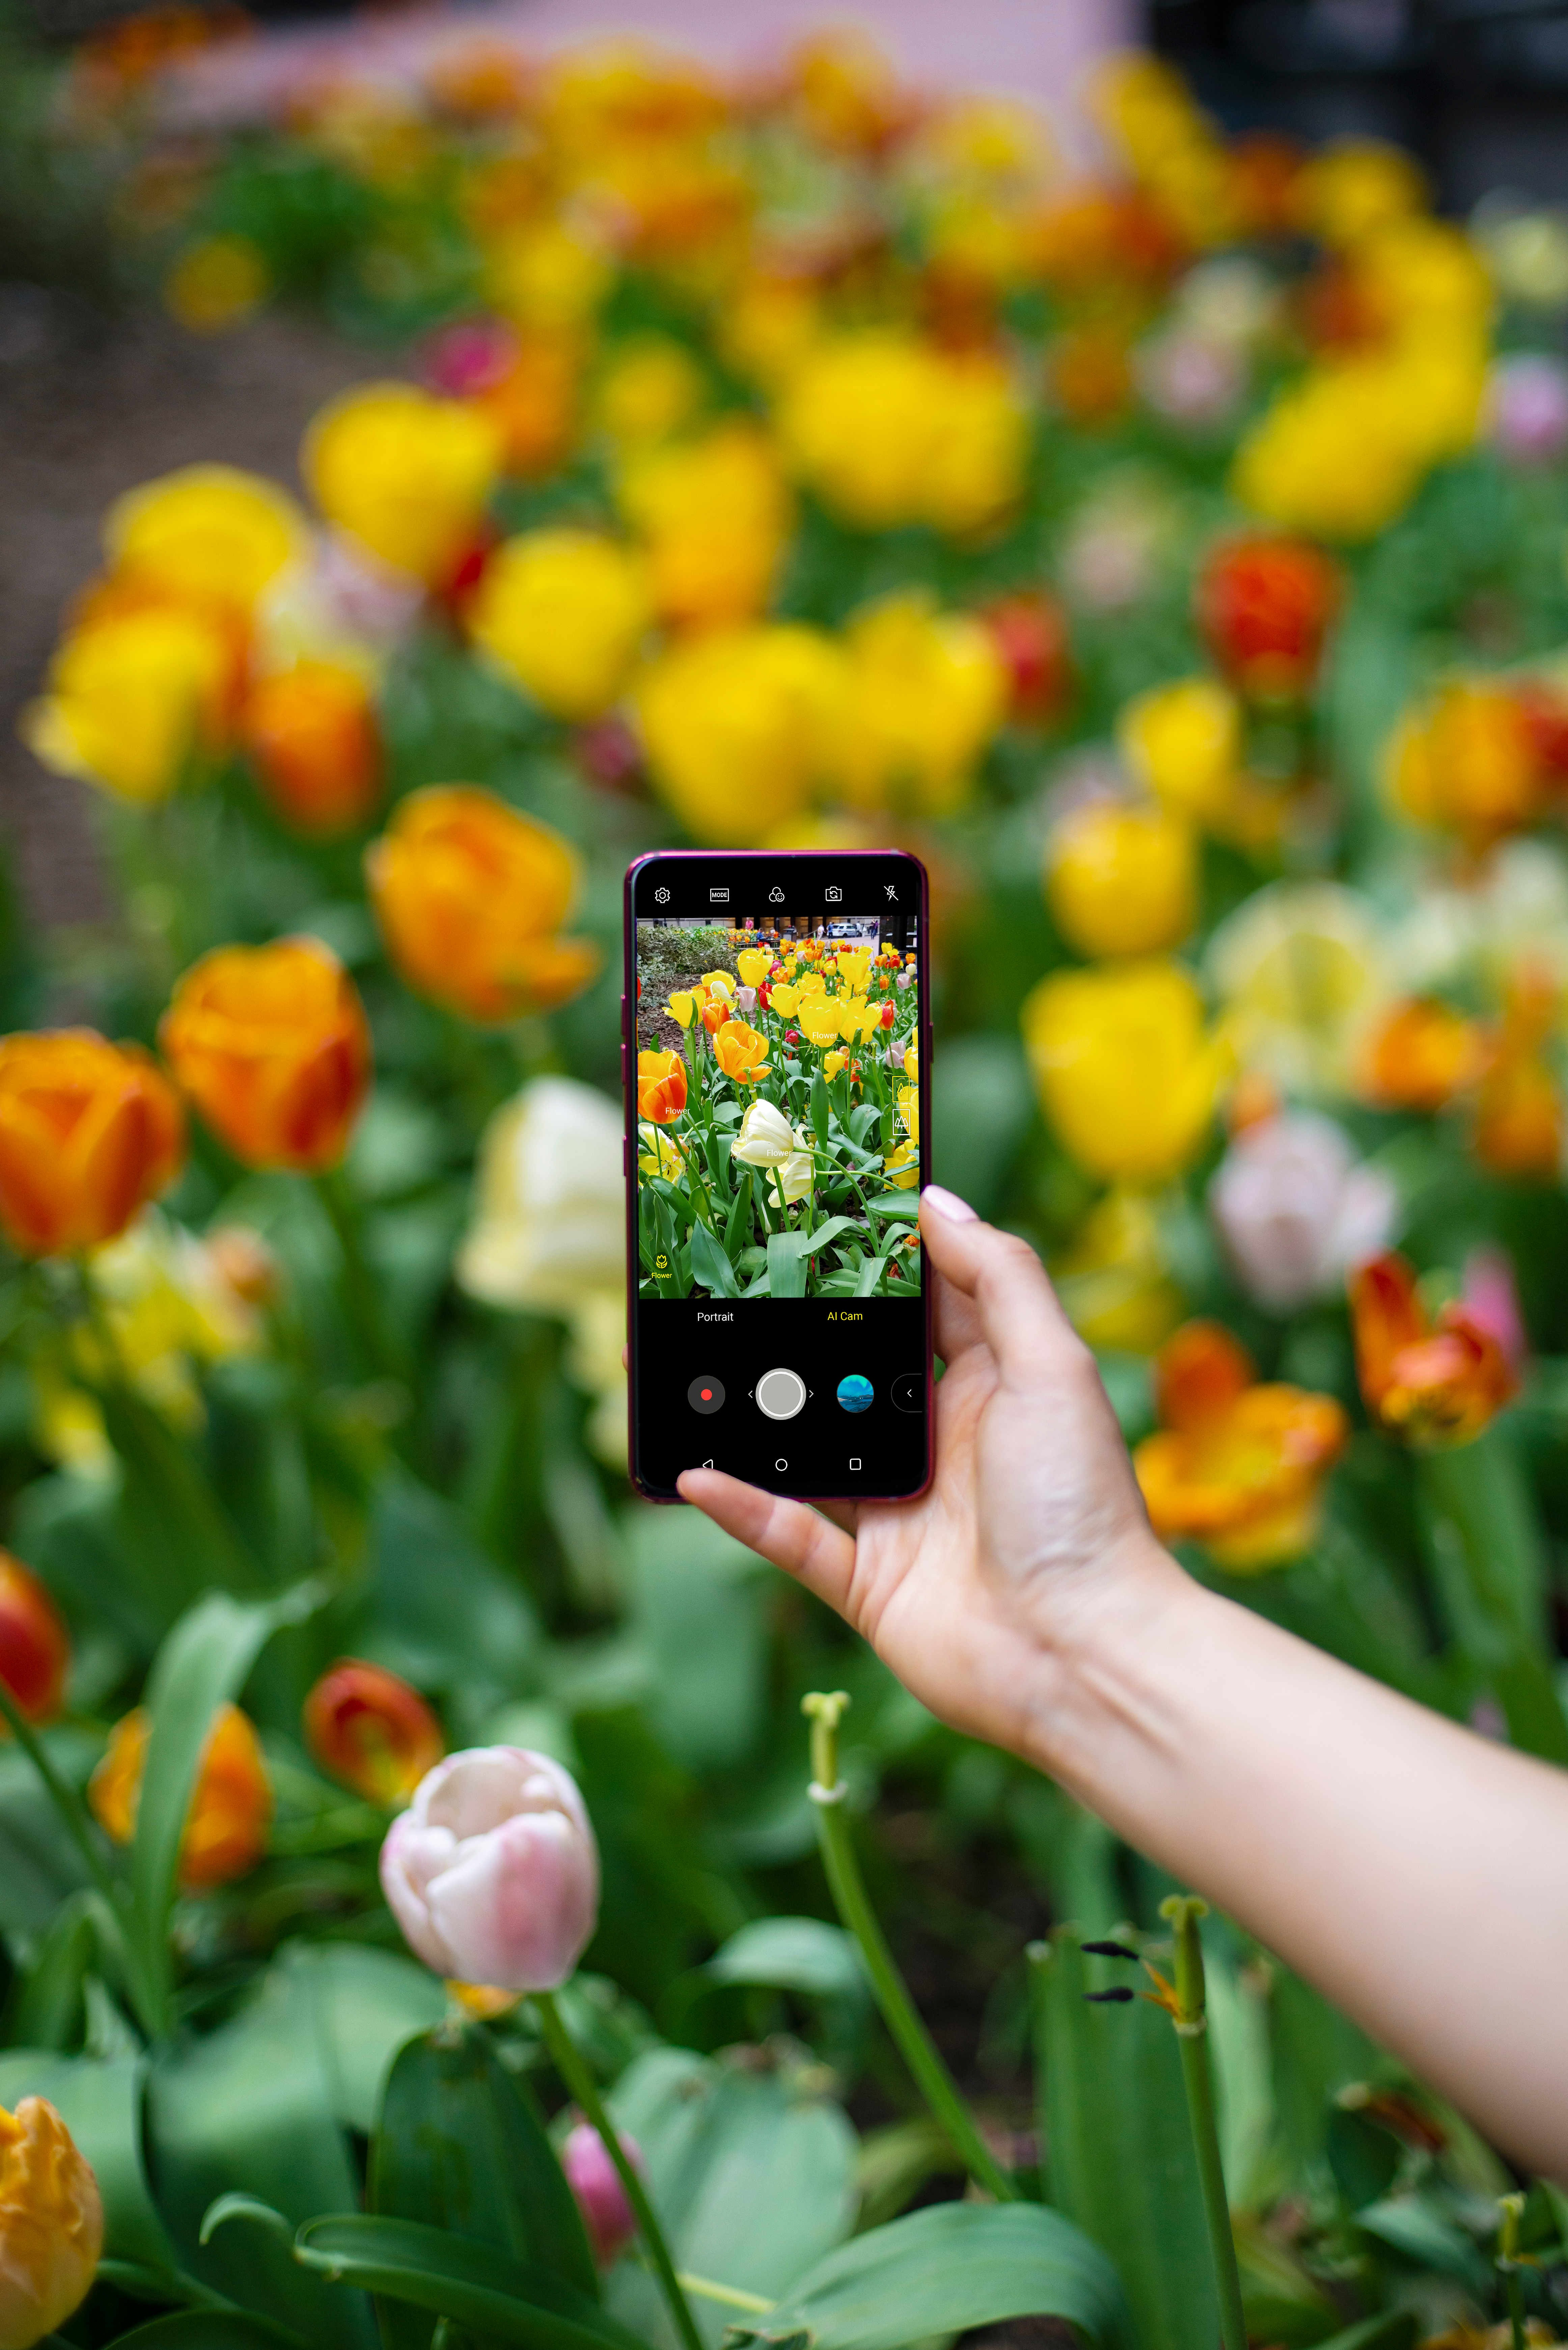 A person taking a photo of a patch of tulips with AI CAM on the LG G7 ThinQ